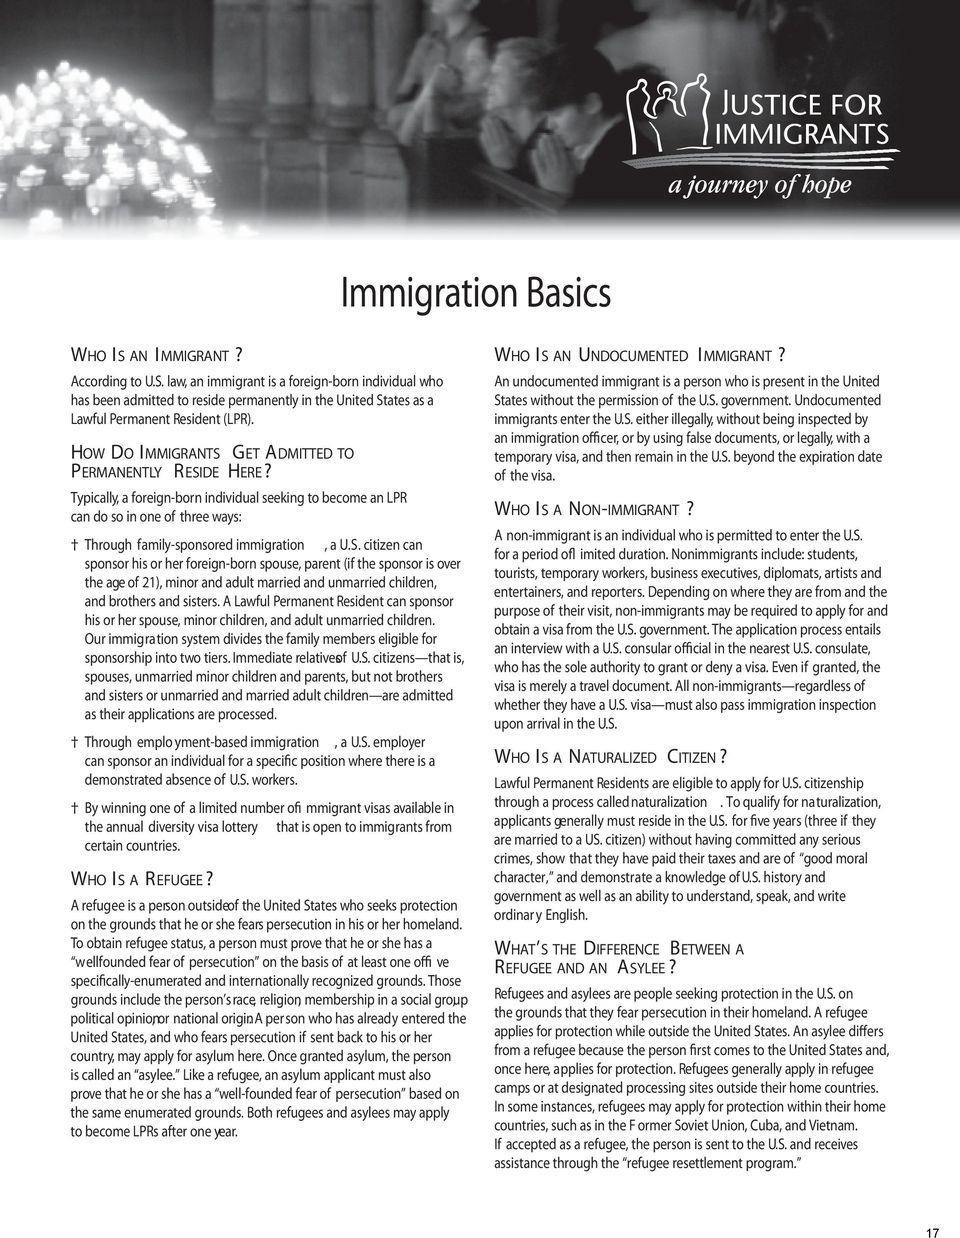 A Lawful Permanent Resident can sponsor his or her spouse, minor children, and adult unmarried children. Our immigration system divides the family members eligible for sponsorship into two tiers.